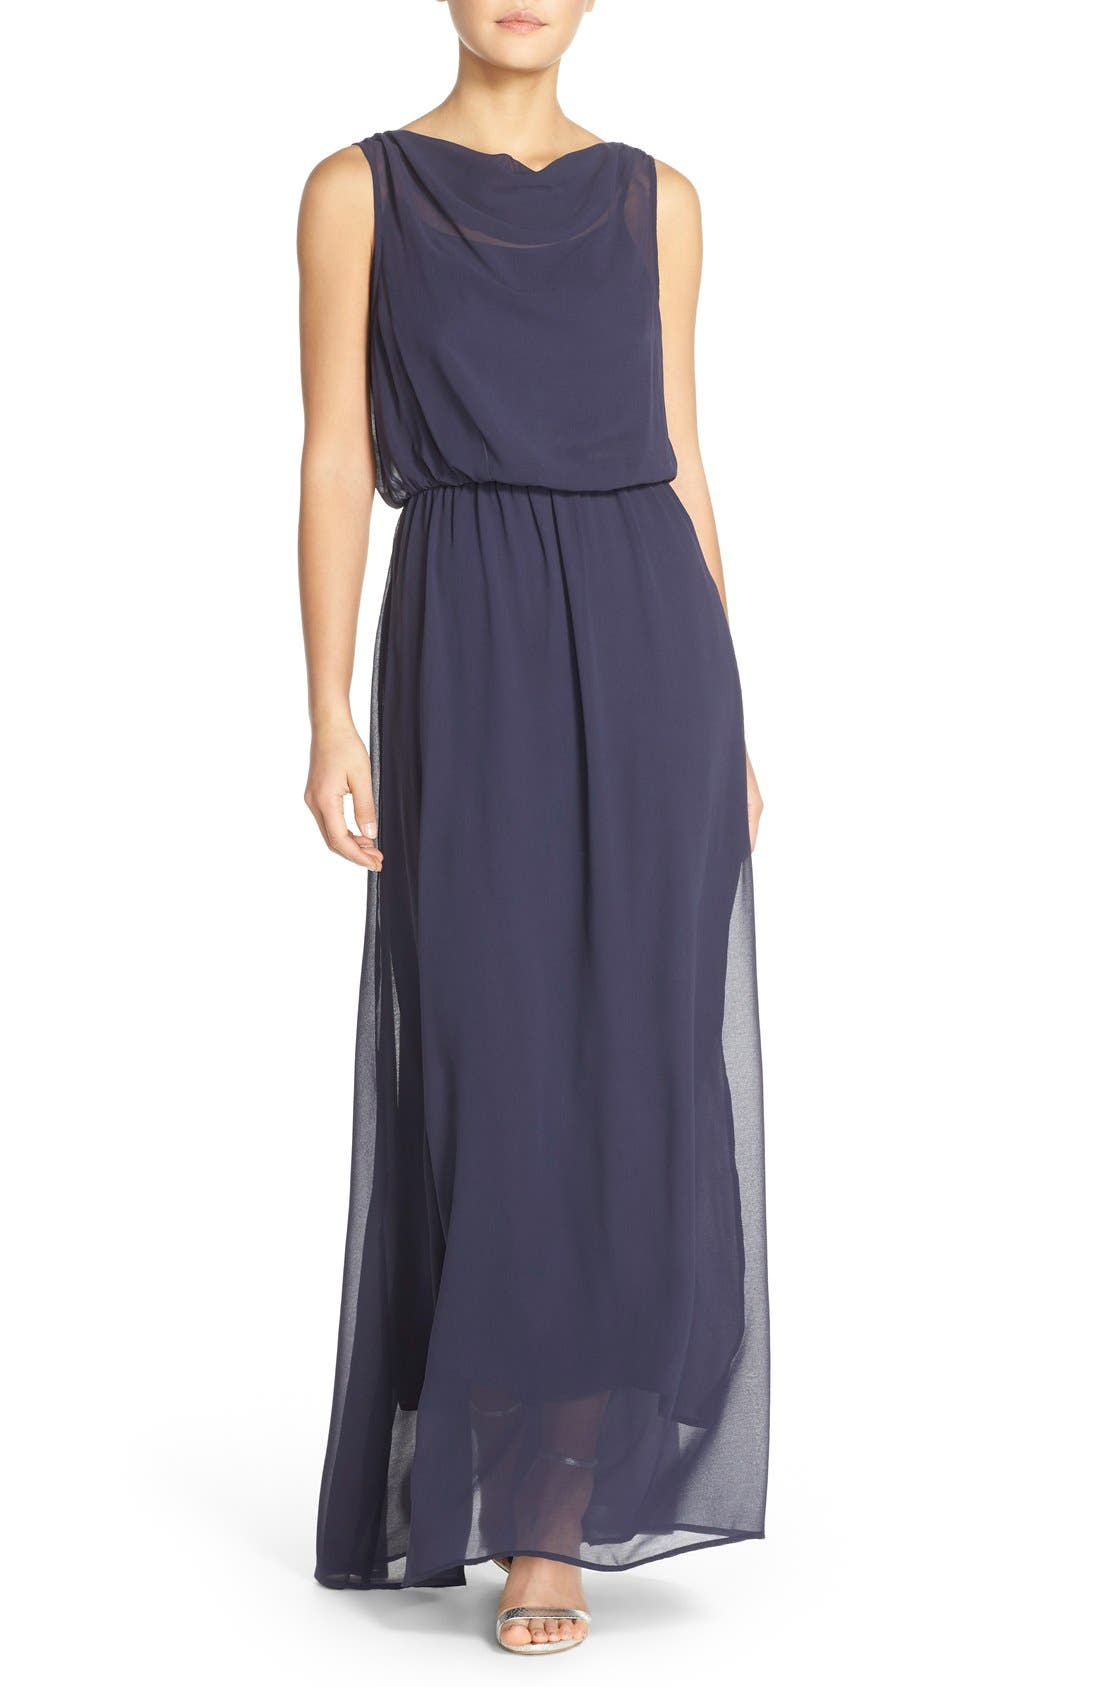 by Lauren Conrad 'Springfield' Cowl Neck Chiffon Gown,                         Main,                         color, 410